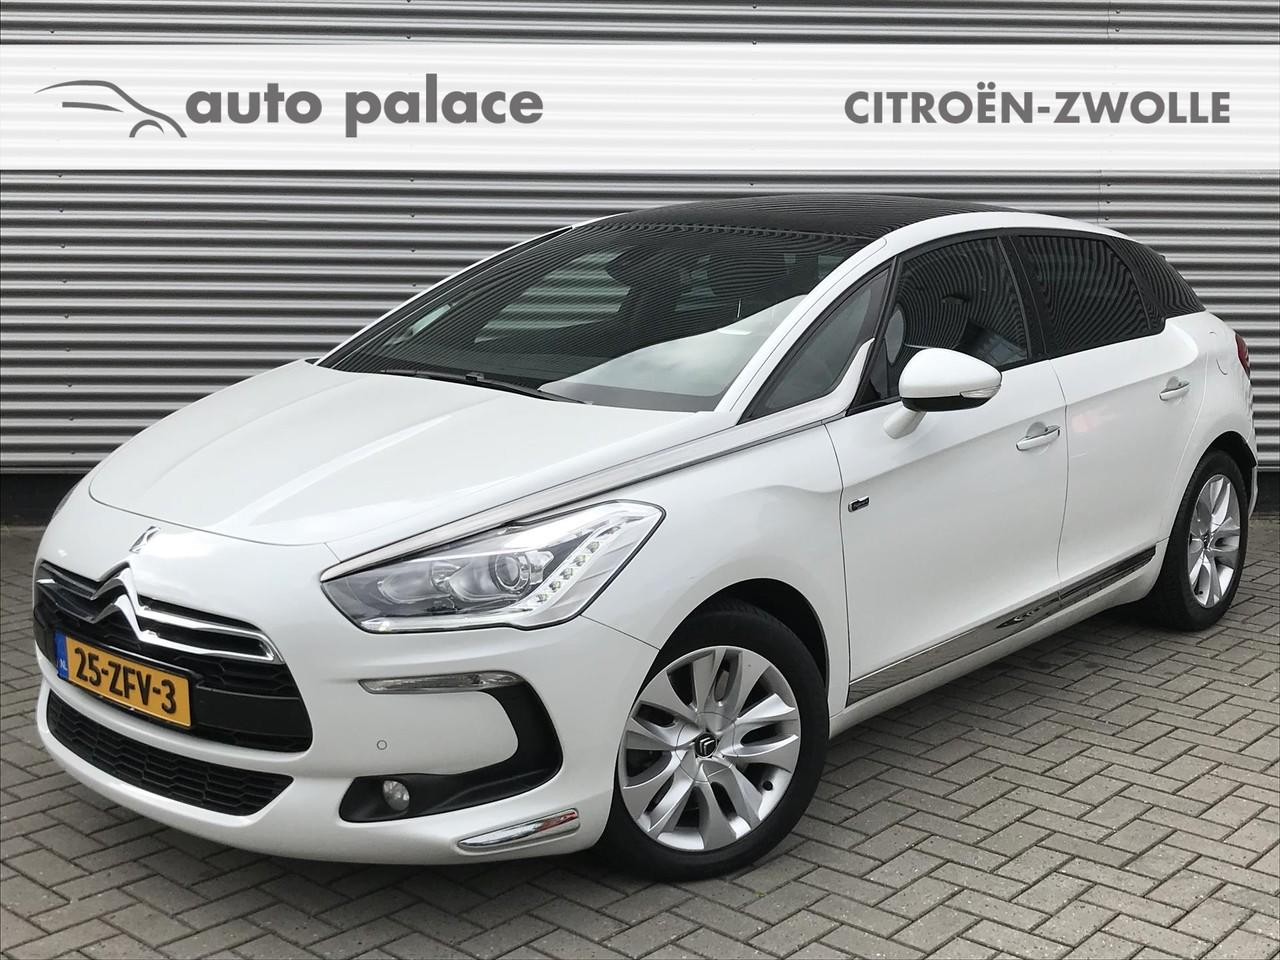 Citroën Ds5 2.0 hdi hybrid4 aut. executive